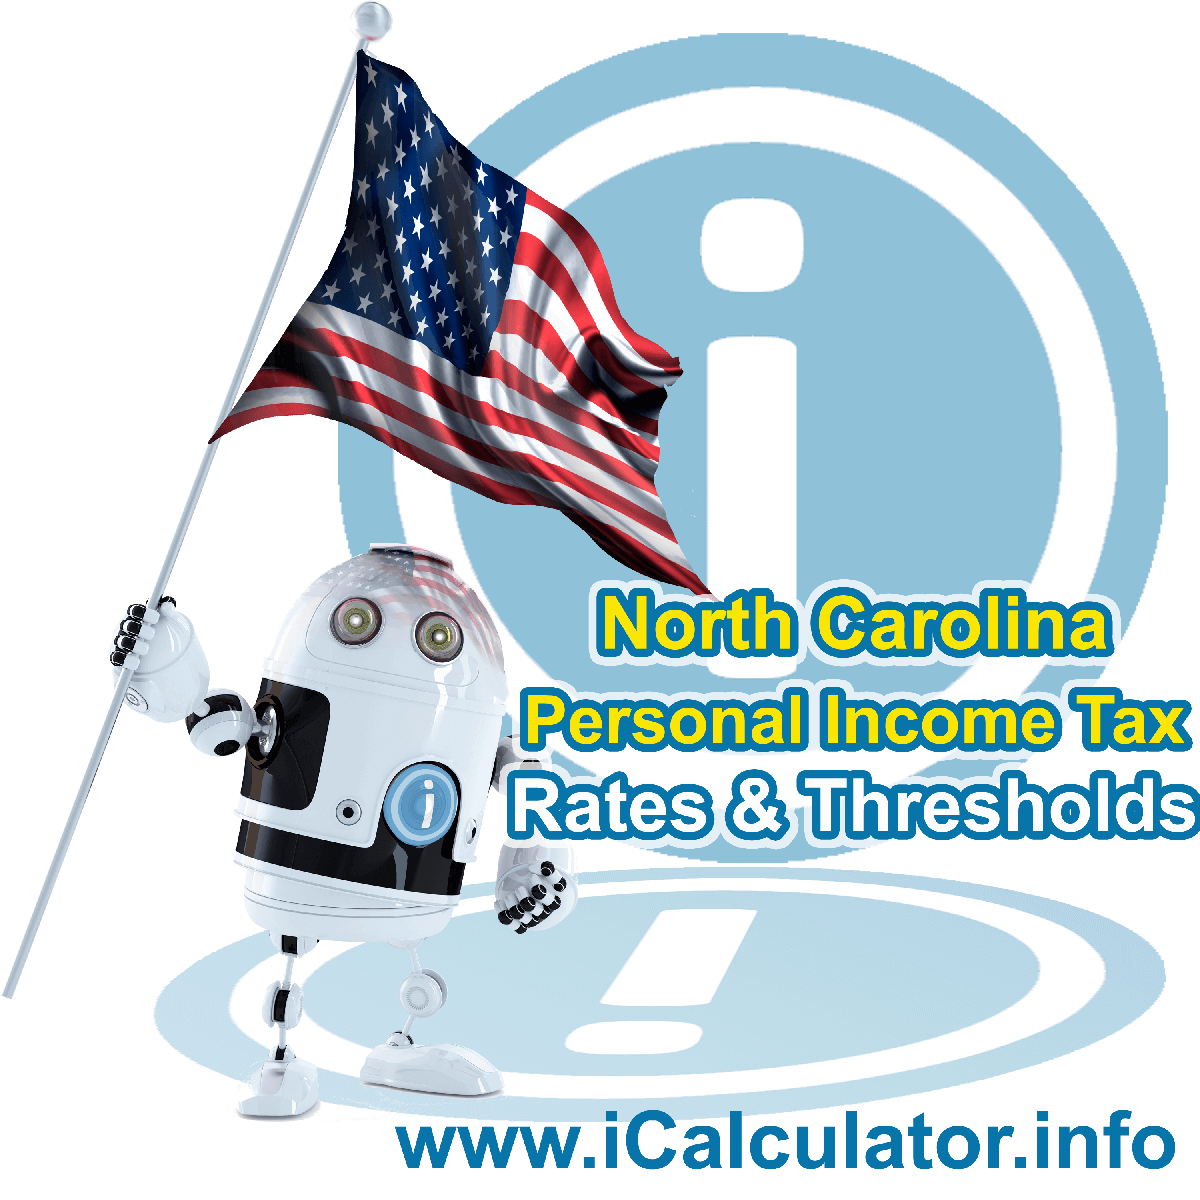 North Carolina State Tax Tables 2016. This image displays details of the North Carolina State Tax Tables for the 2016 tax return year which is provided in support of the 2016 US Tax Calculator